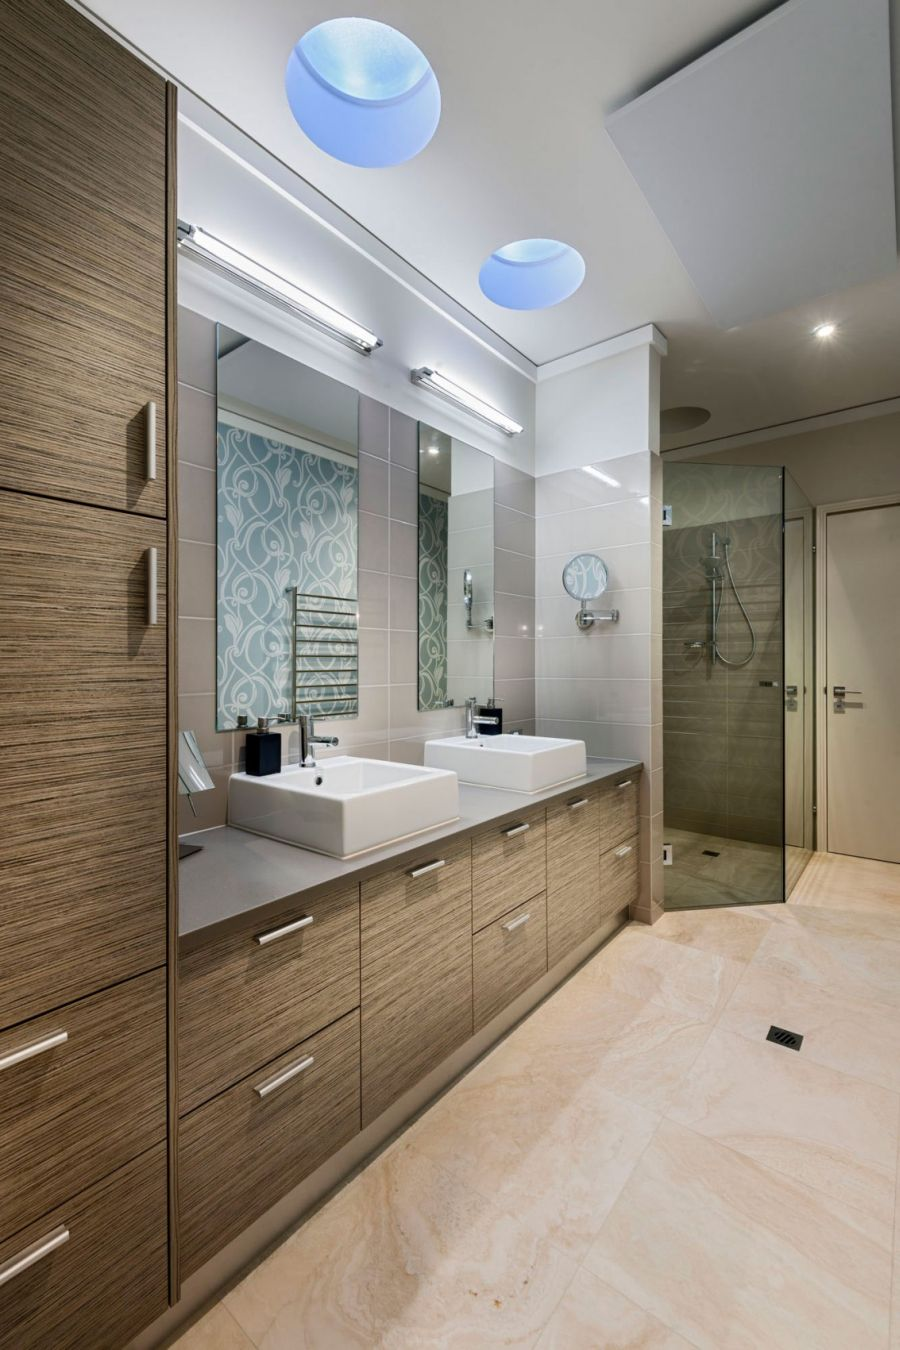 Glass shower doors in the bathroom